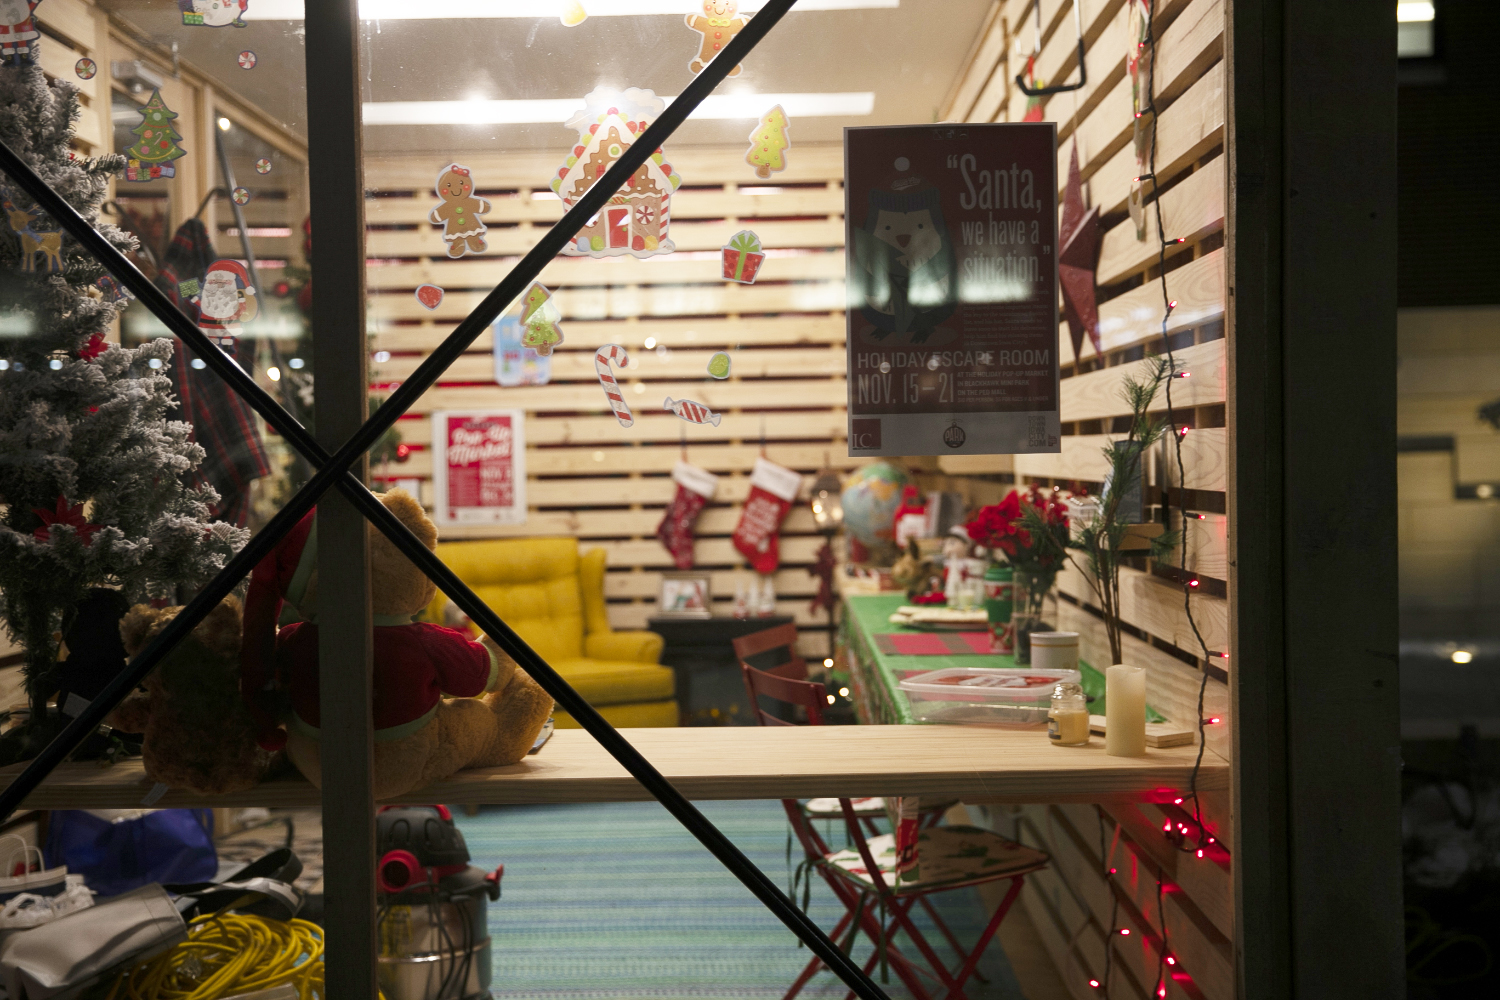 A holiday pop-up shop is seen in the Ped Mall on Thursday, November 14, 2019. The holiday pop-up shops will be going on through December 24. (Raquele Decker/The Daily Iowan)